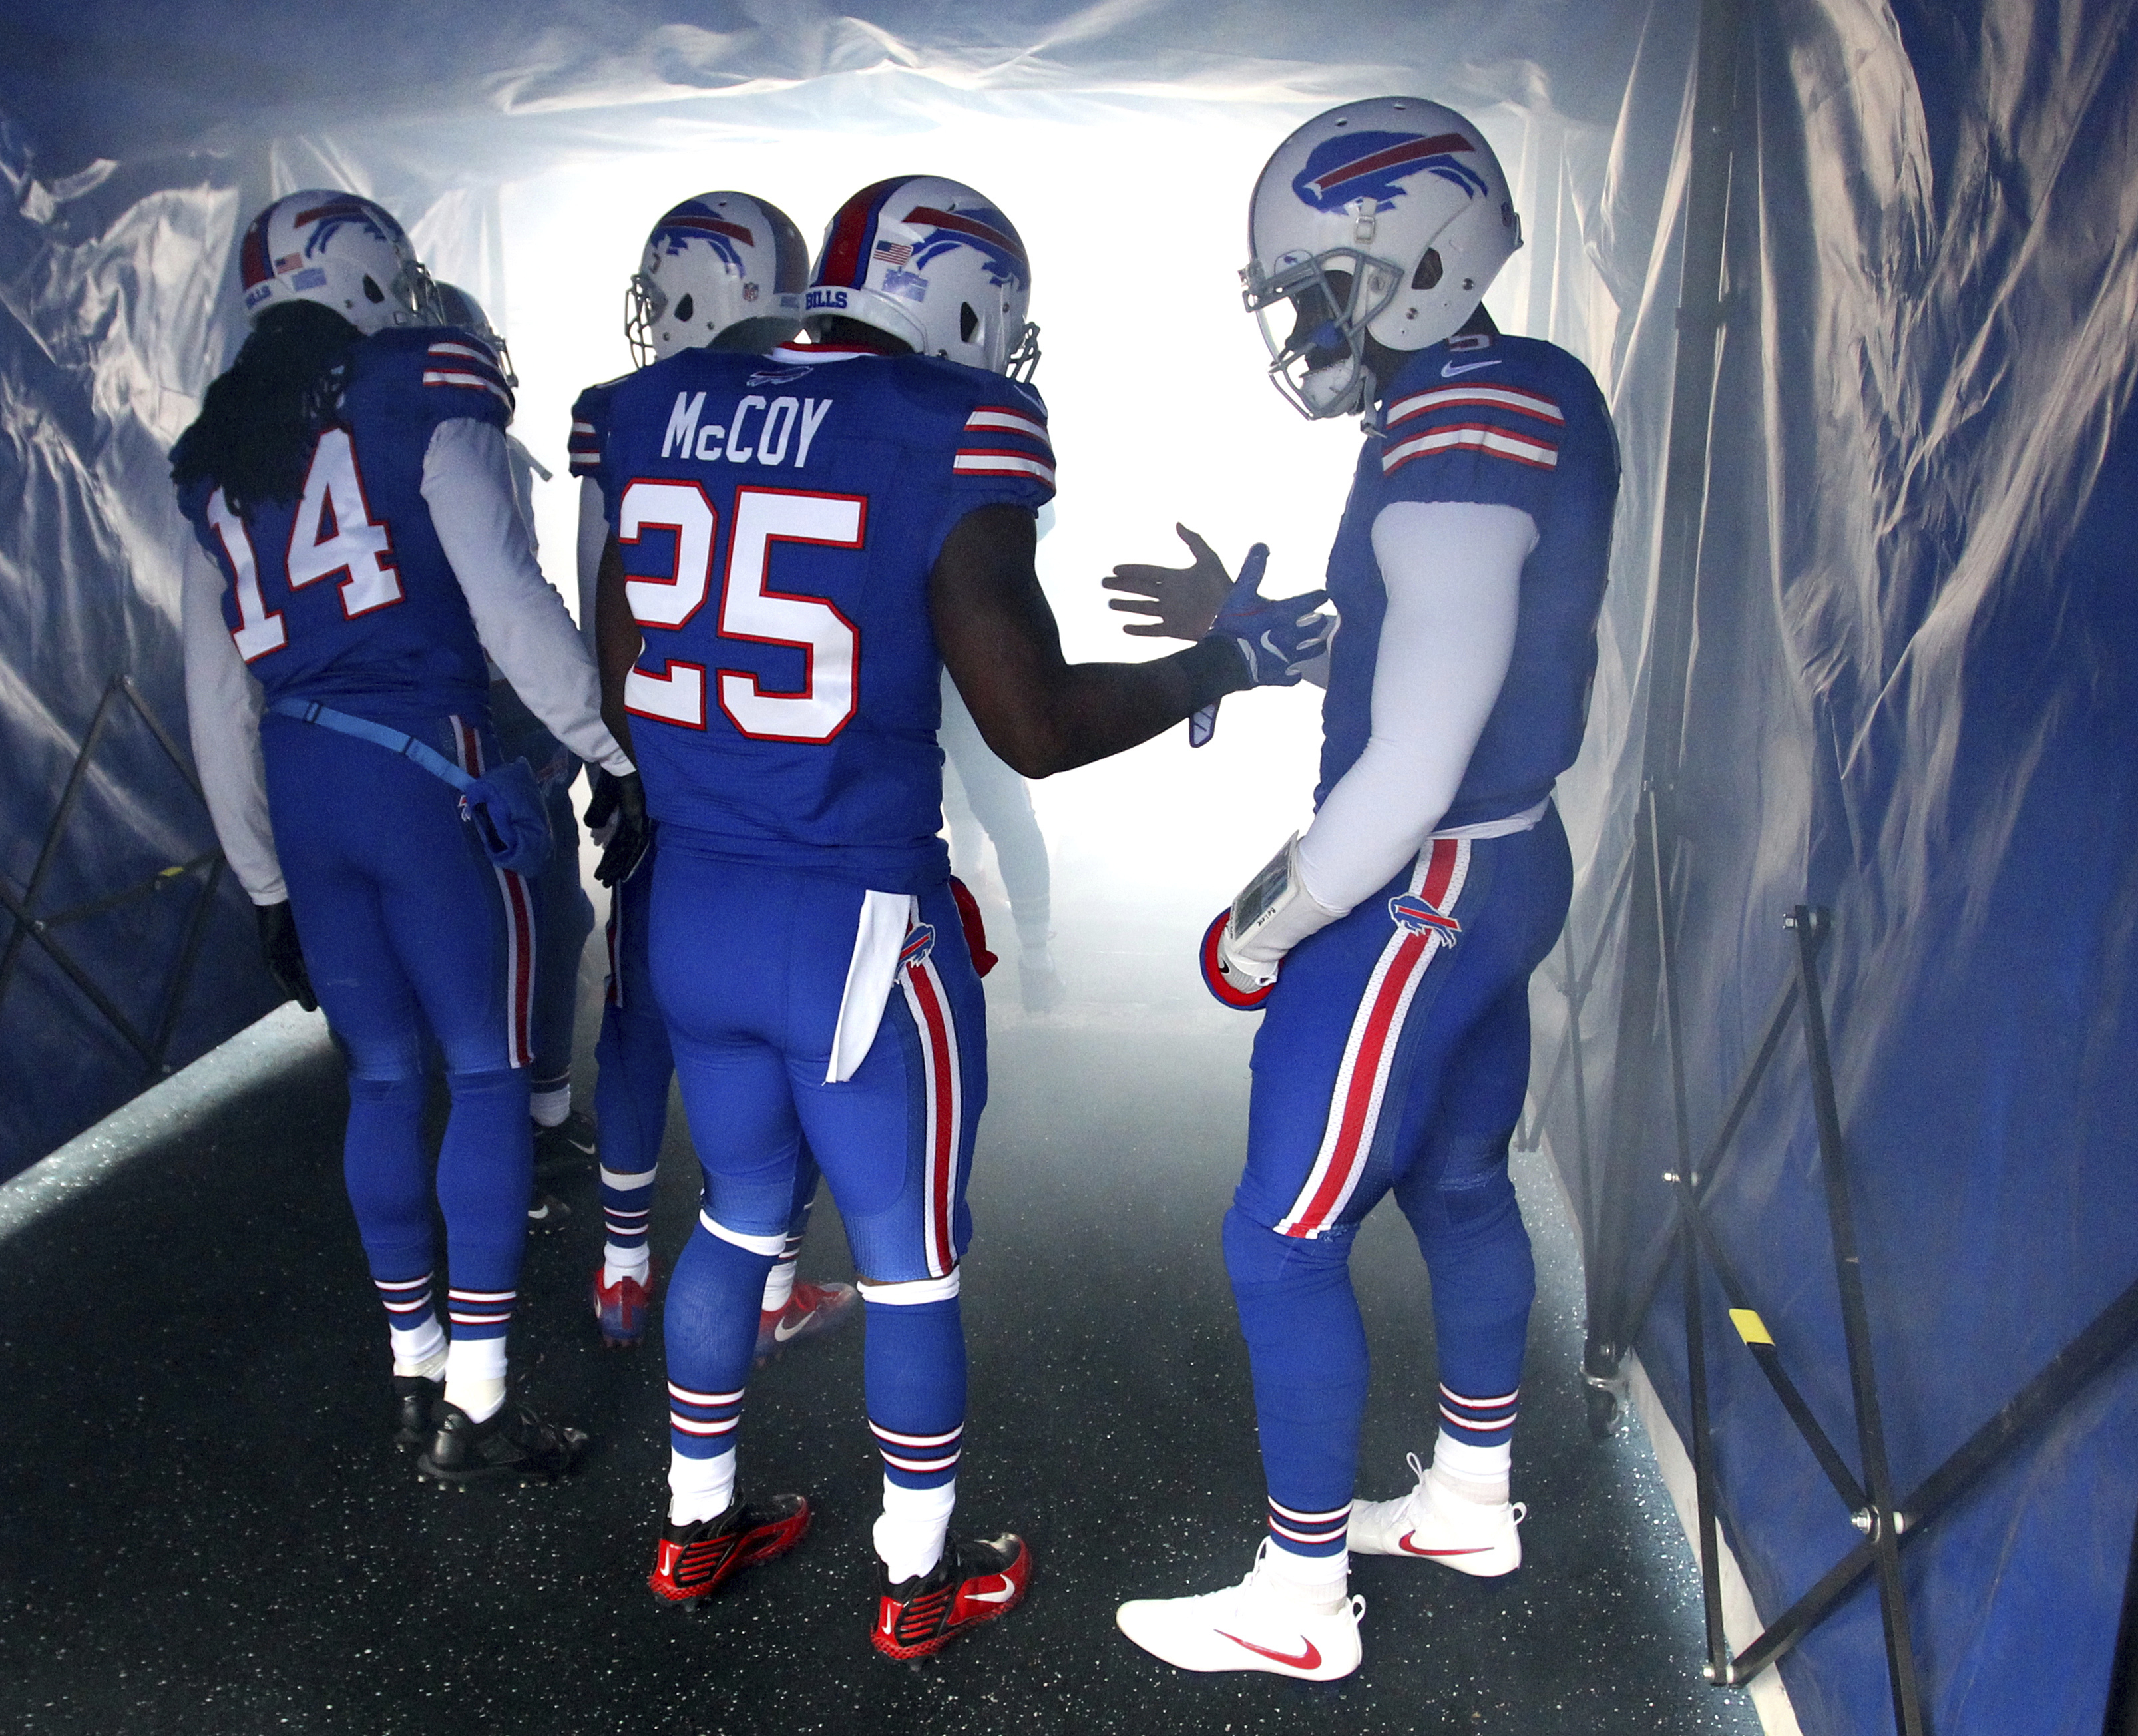 Buffalo Bills quarterback Tyrod Taylor, right, shakes hands with running back LeSean McCoy (25) prior to an NFL football game against the Cleveland Browns, Sunday, Dec. 18, 2016, in Orchard Park, N.Y. (AP Photo/Bill Wippert)